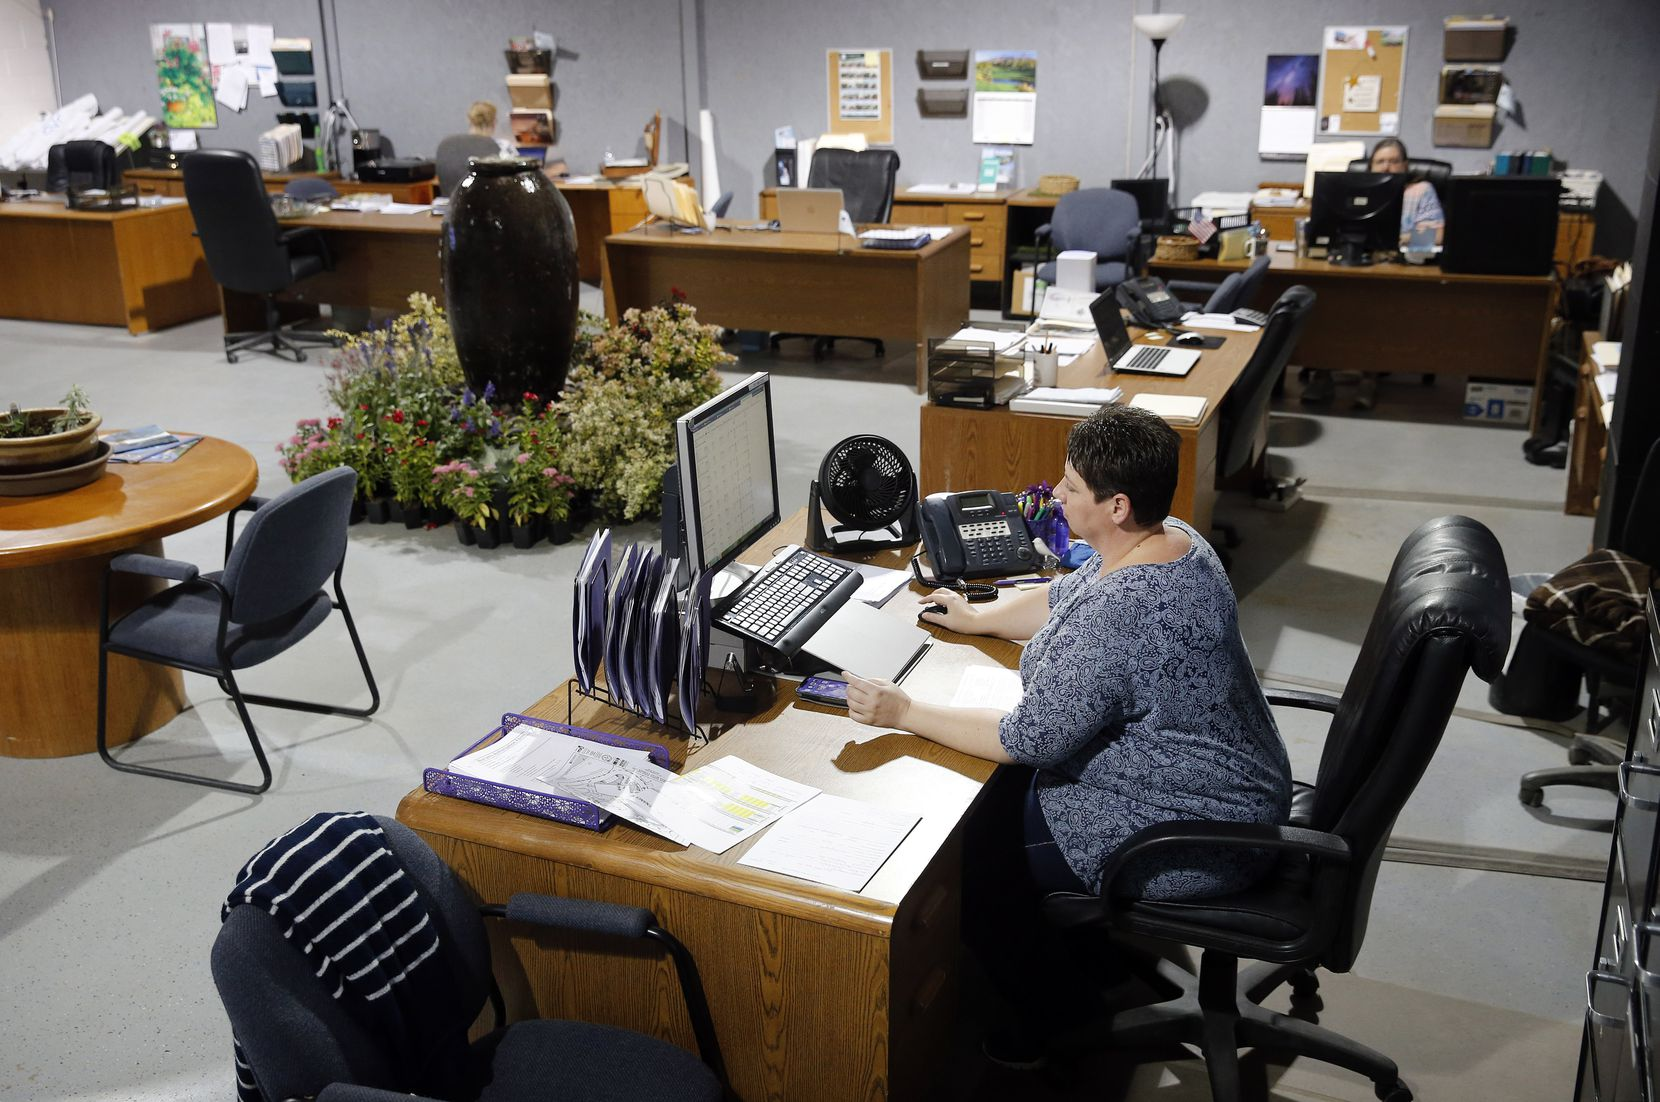 Work spaces at Highland Landscaping in Southlake have been spaced out so employees can maintain proper social distancing. Workers don't have to wear masks at their desks, but they must do so if they move around the office.